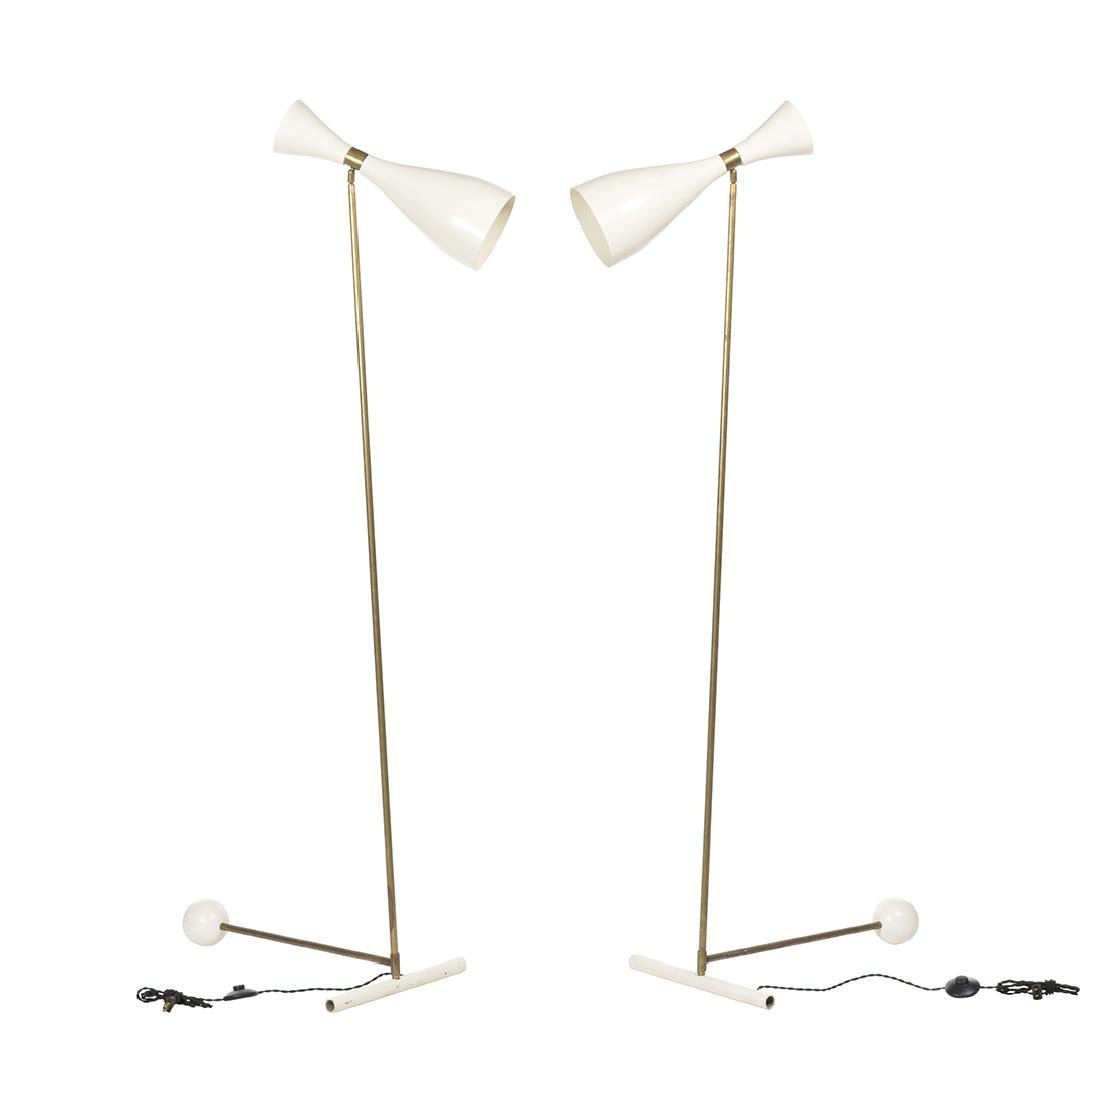 Italian Adjustable Floor Lamps (2)